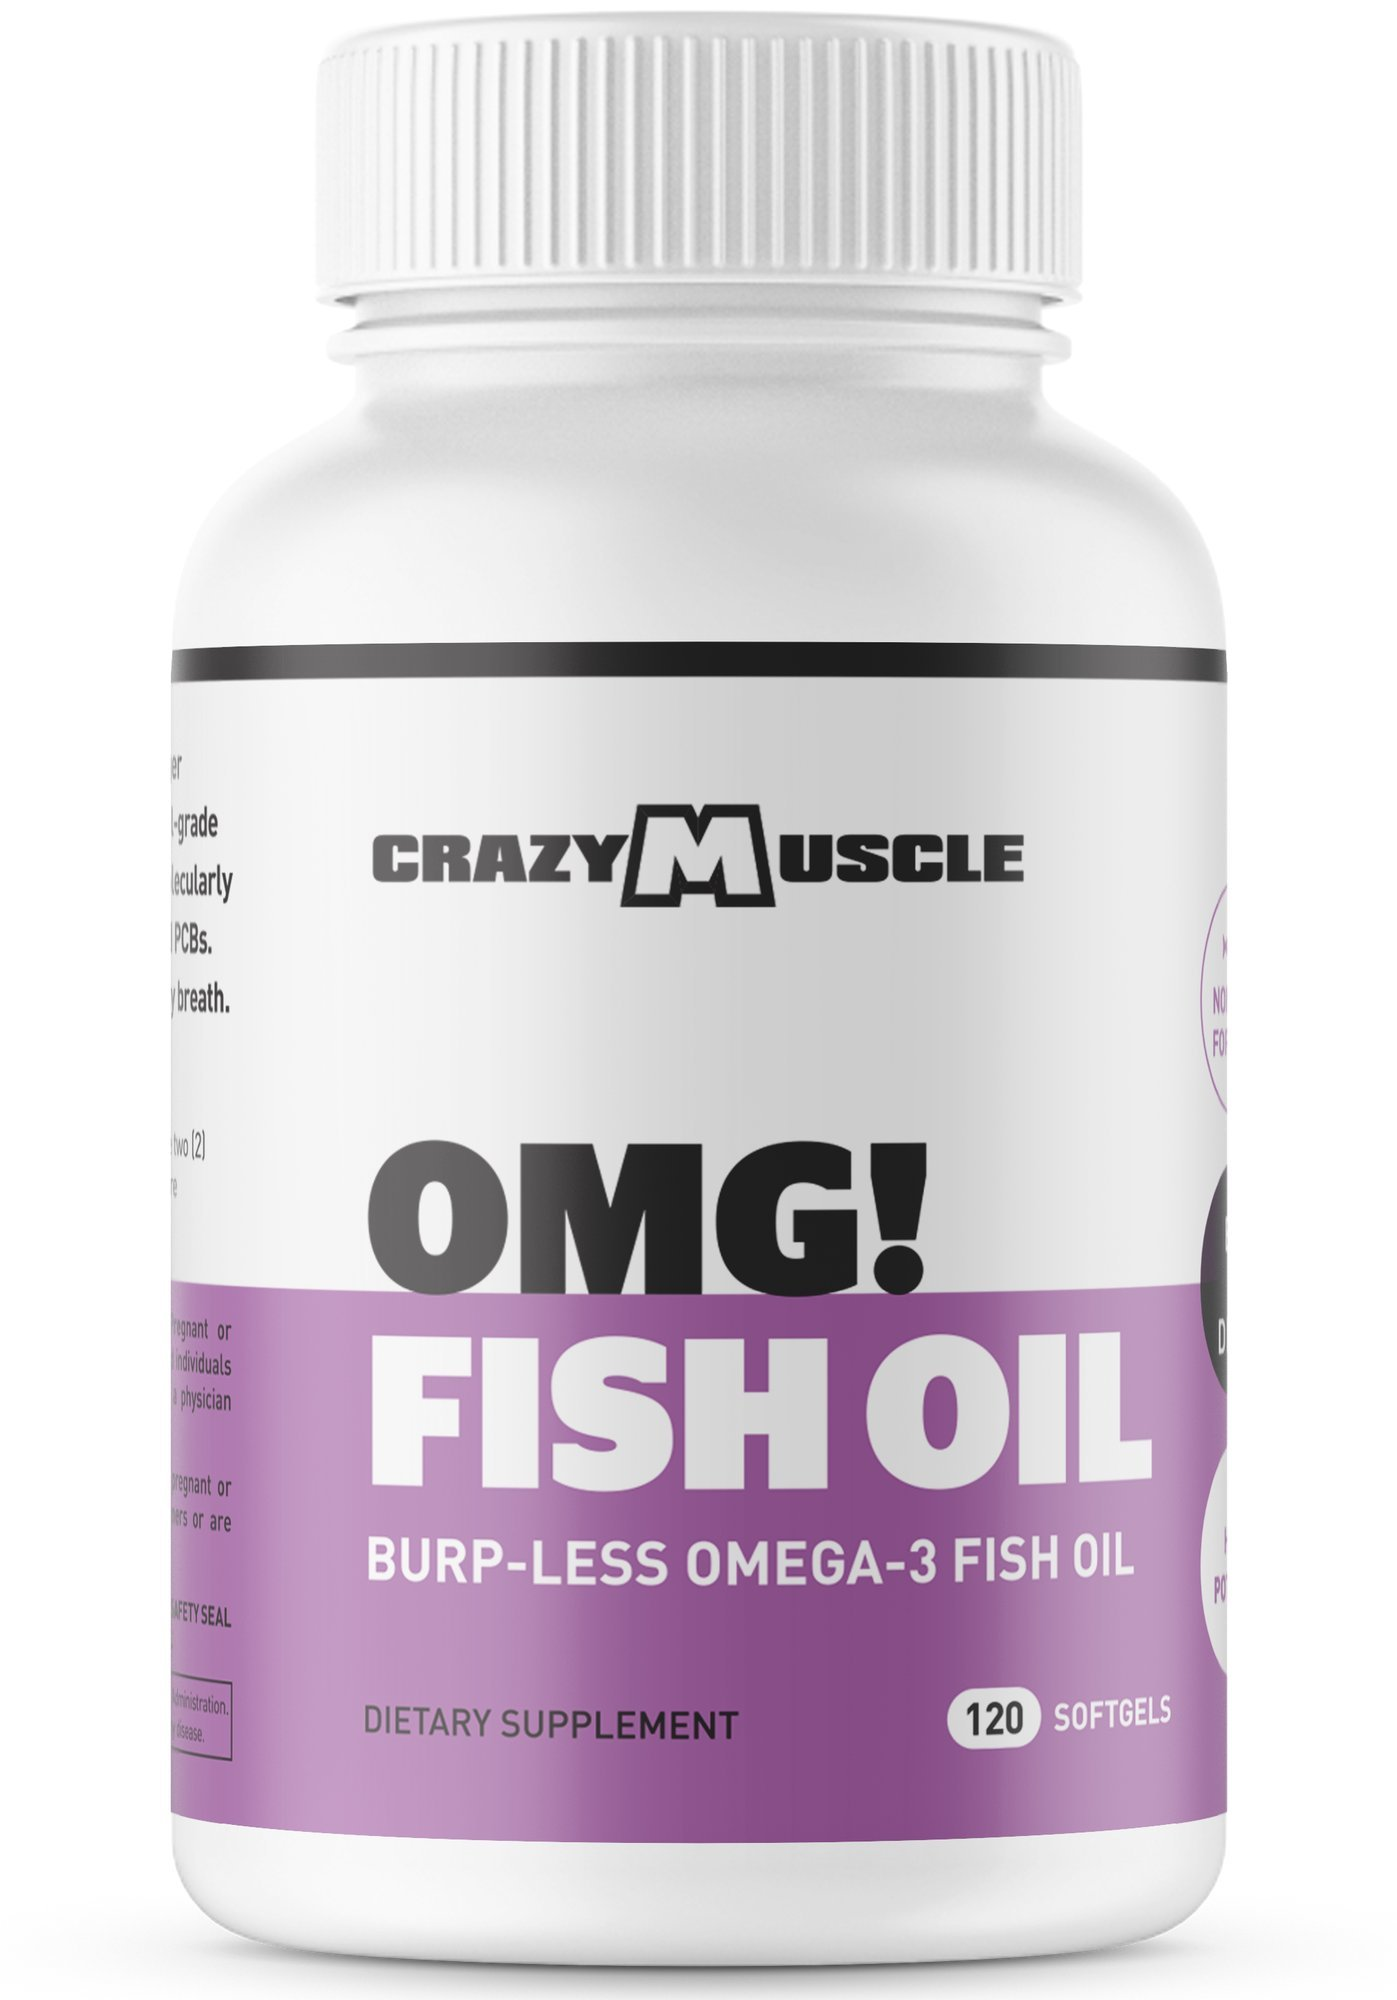 """Omega 3 Fish Oils (Non-GMO) - NO Fishy Burps - Made from 100% Anchovies (aka """"Small Fish"""") by Crazy Muscle: More EPA/DHA per Serving - 120 Softgels"""